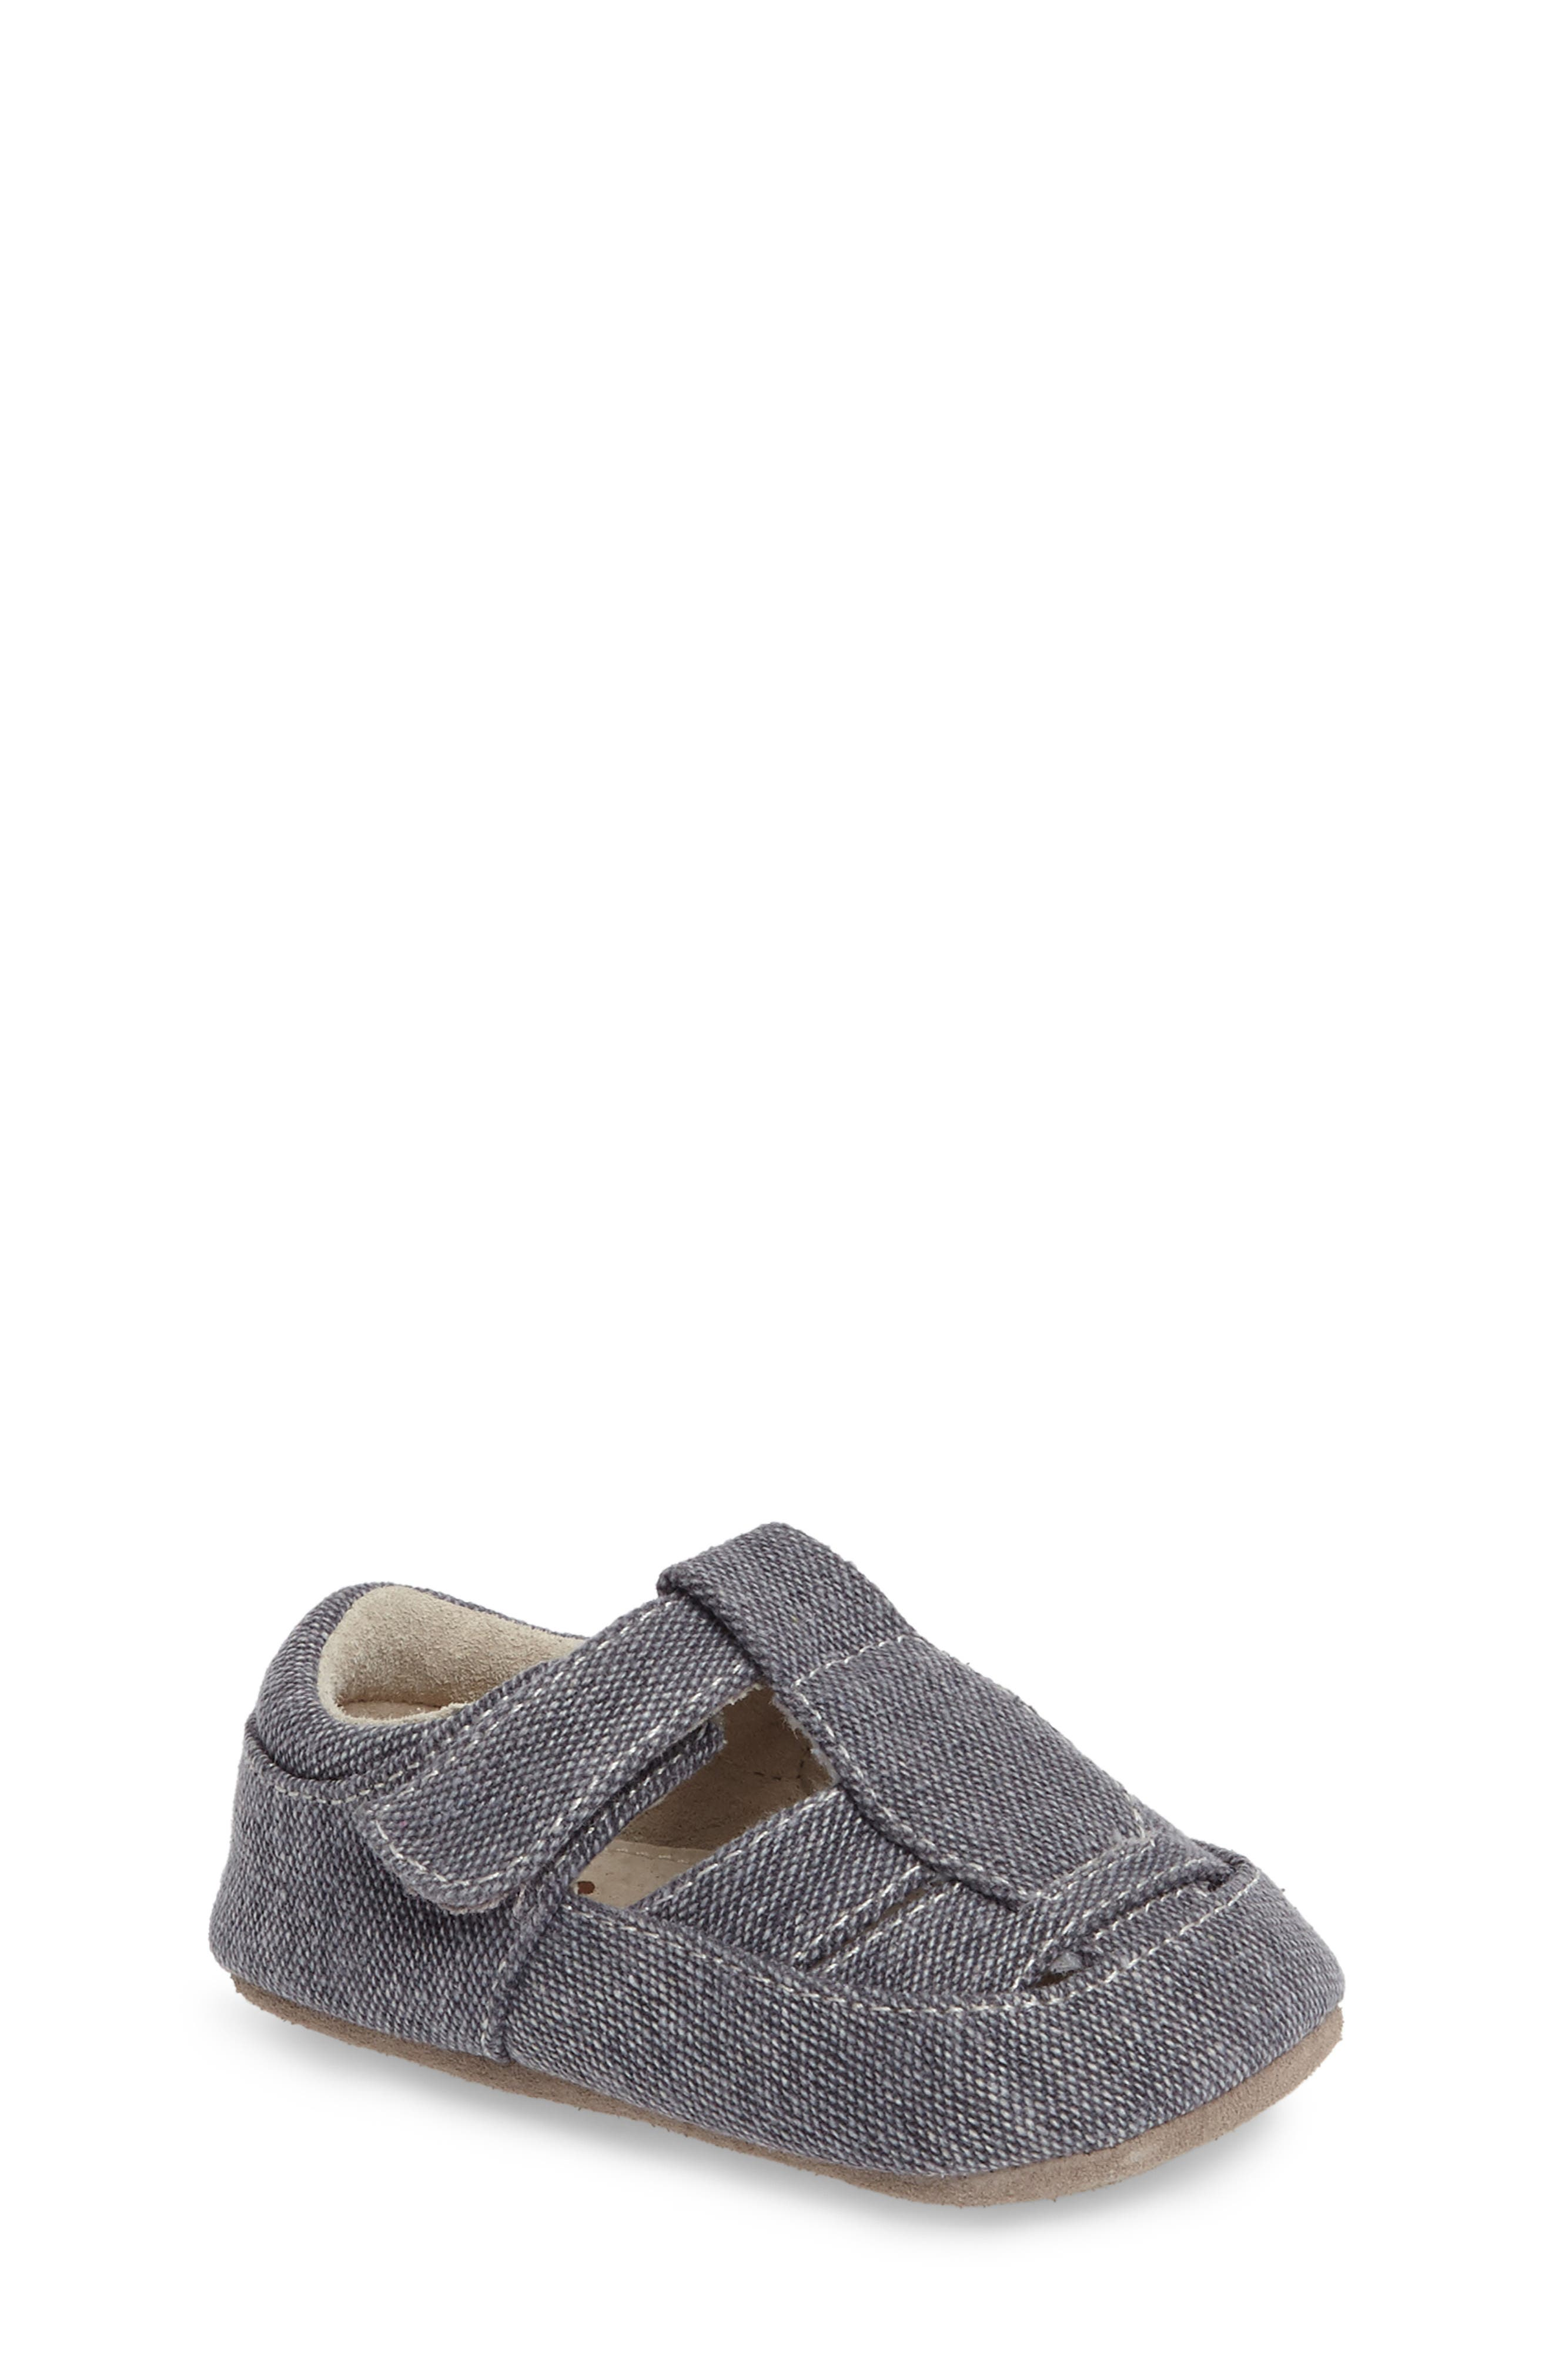 See Kai Run Jude Fisherman Crib Sandal (Baby)